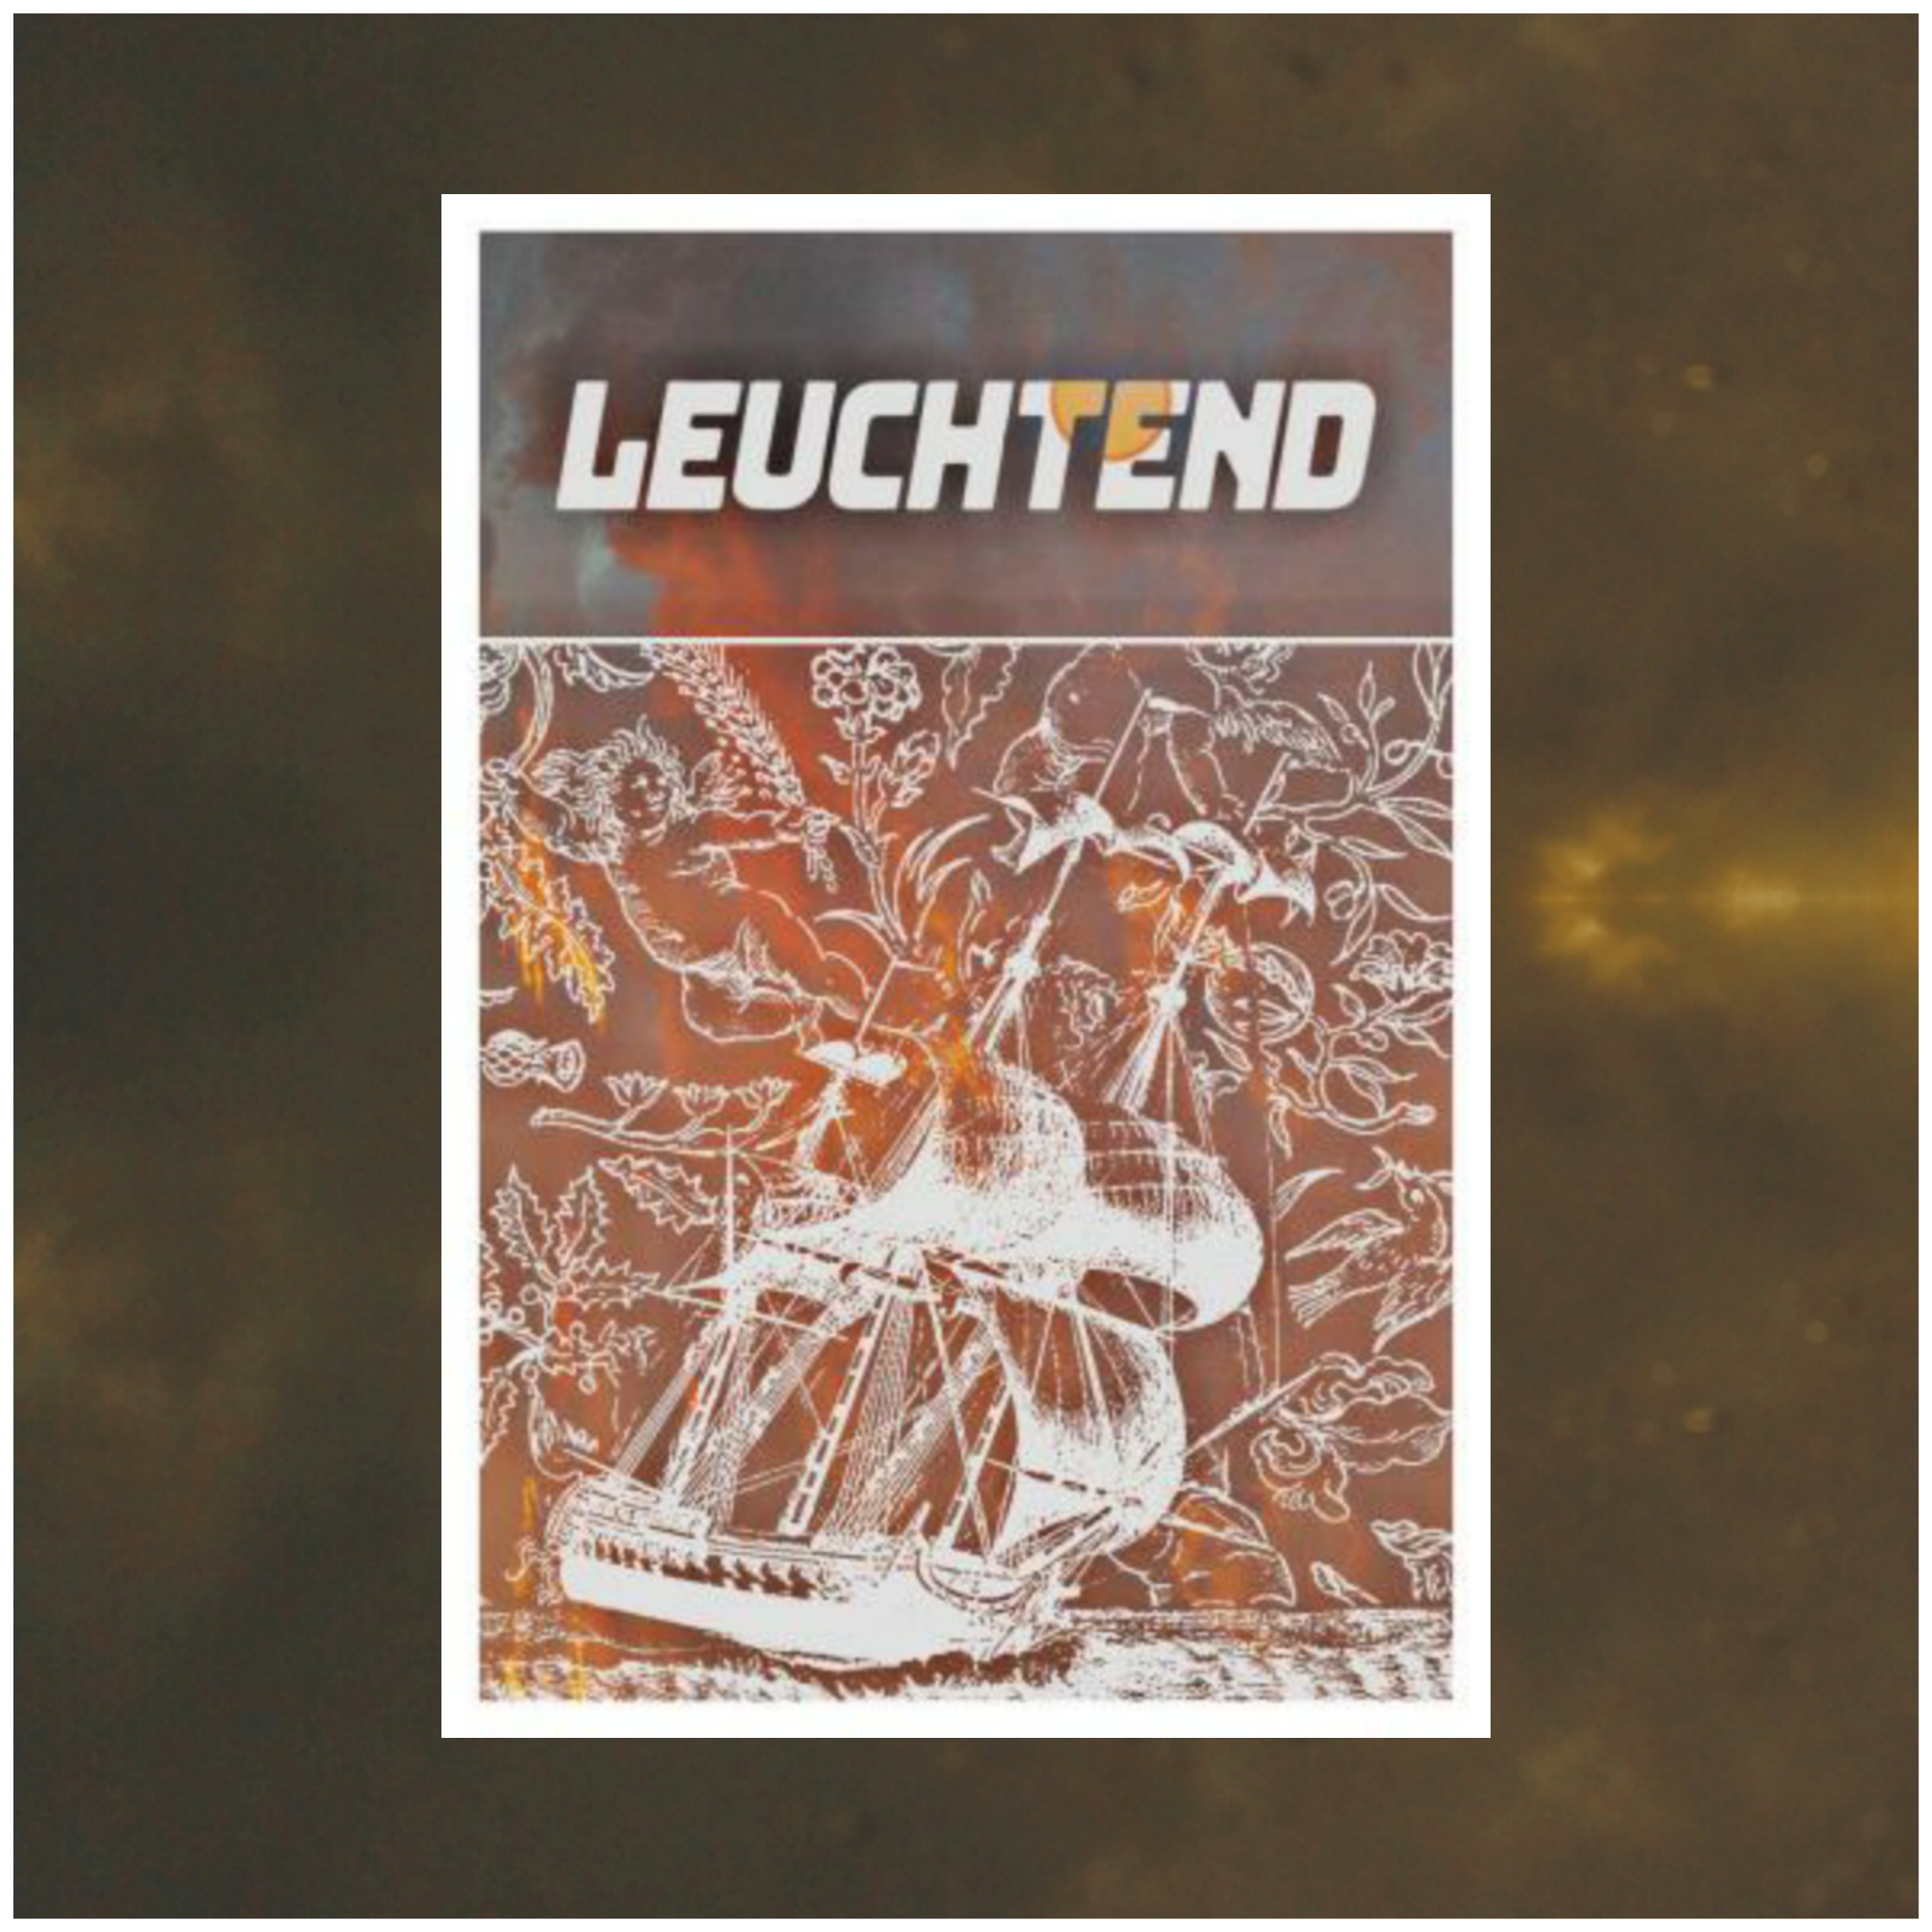 Leuchtend Socotra Poster (Sold Out)